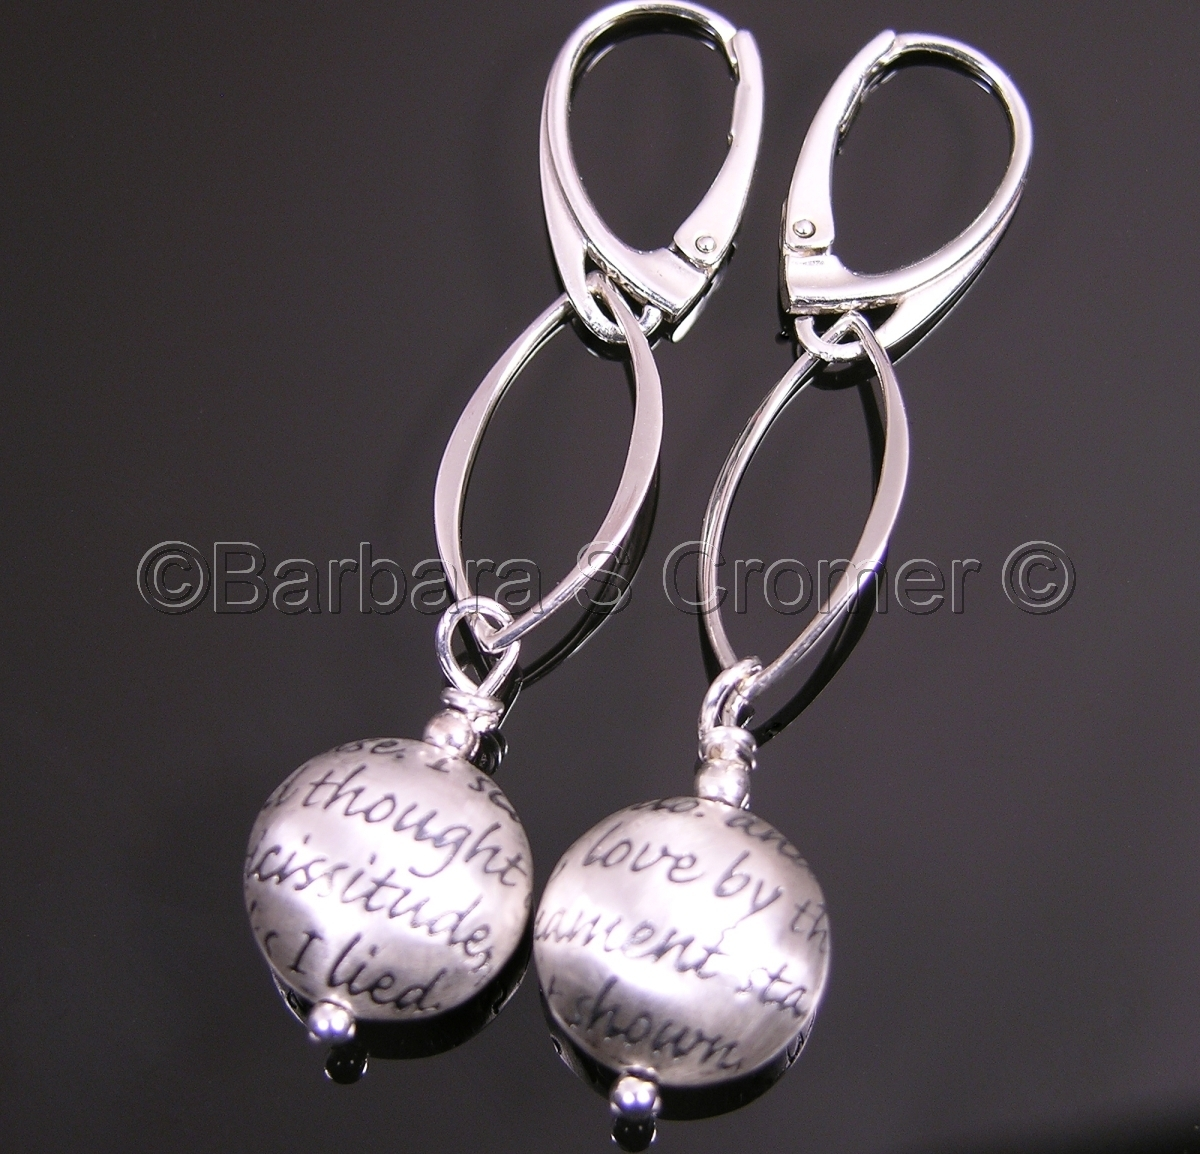 earrings, bead with a love sonnet ,marquise shape link,  modern euro-style lever back ear wires (large view)